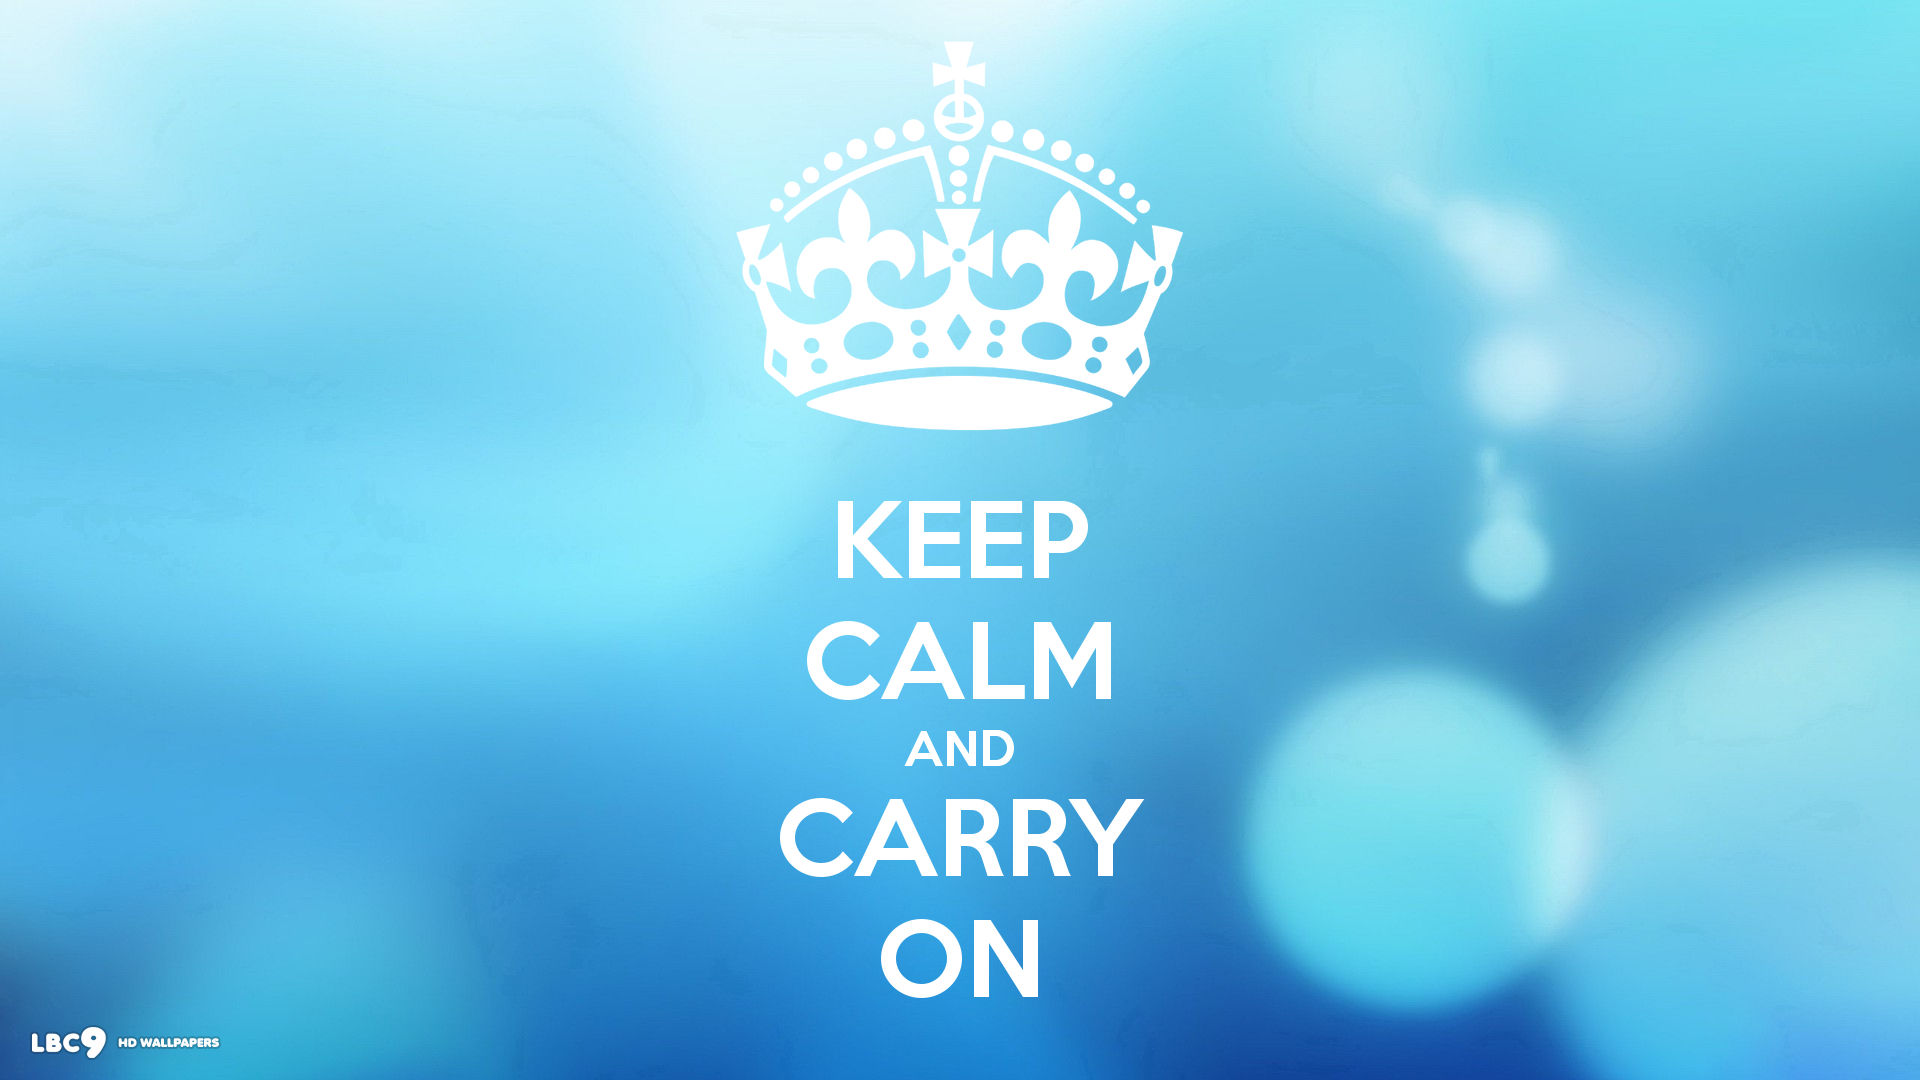 Download Image Keep Calm And Carry On Wallpaper PC Android IPhone 1920x1080